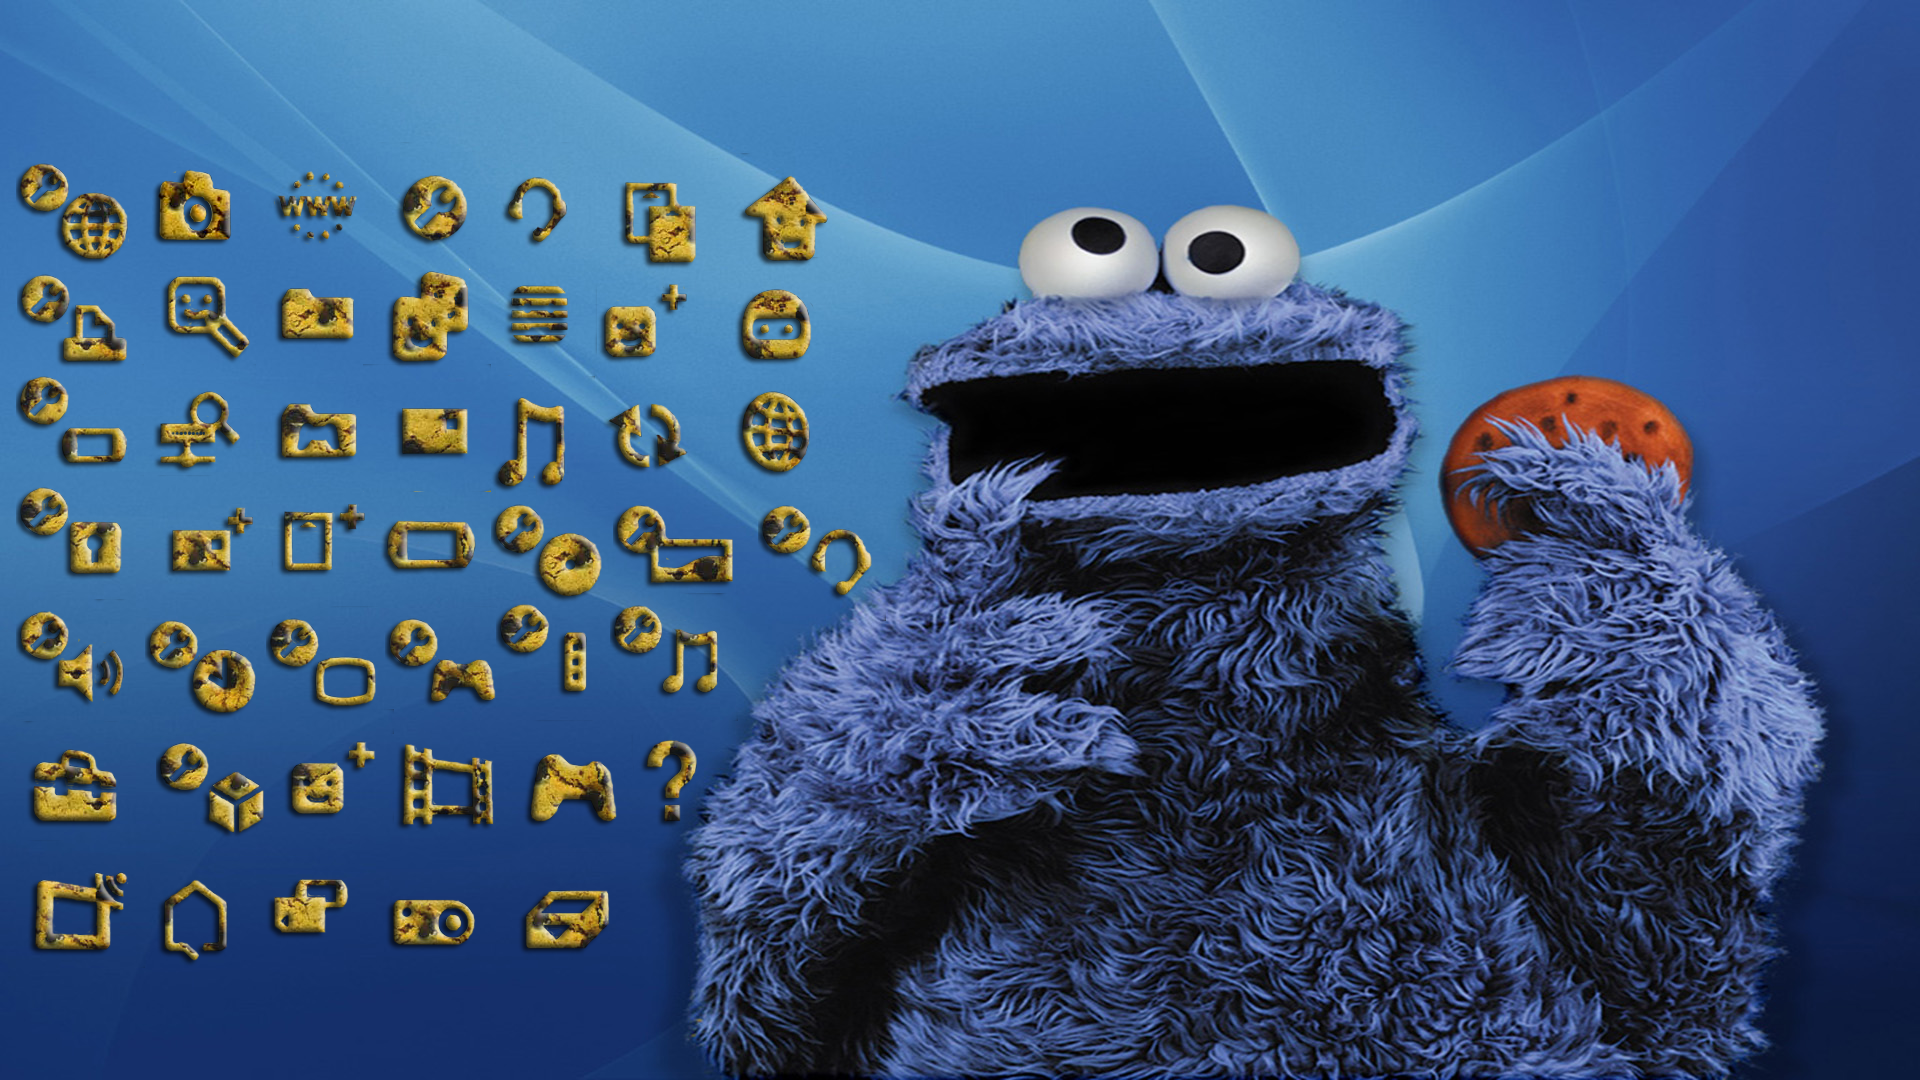 Cookie Monster Png Hd Transparent Cookie Monster Hd Png Images